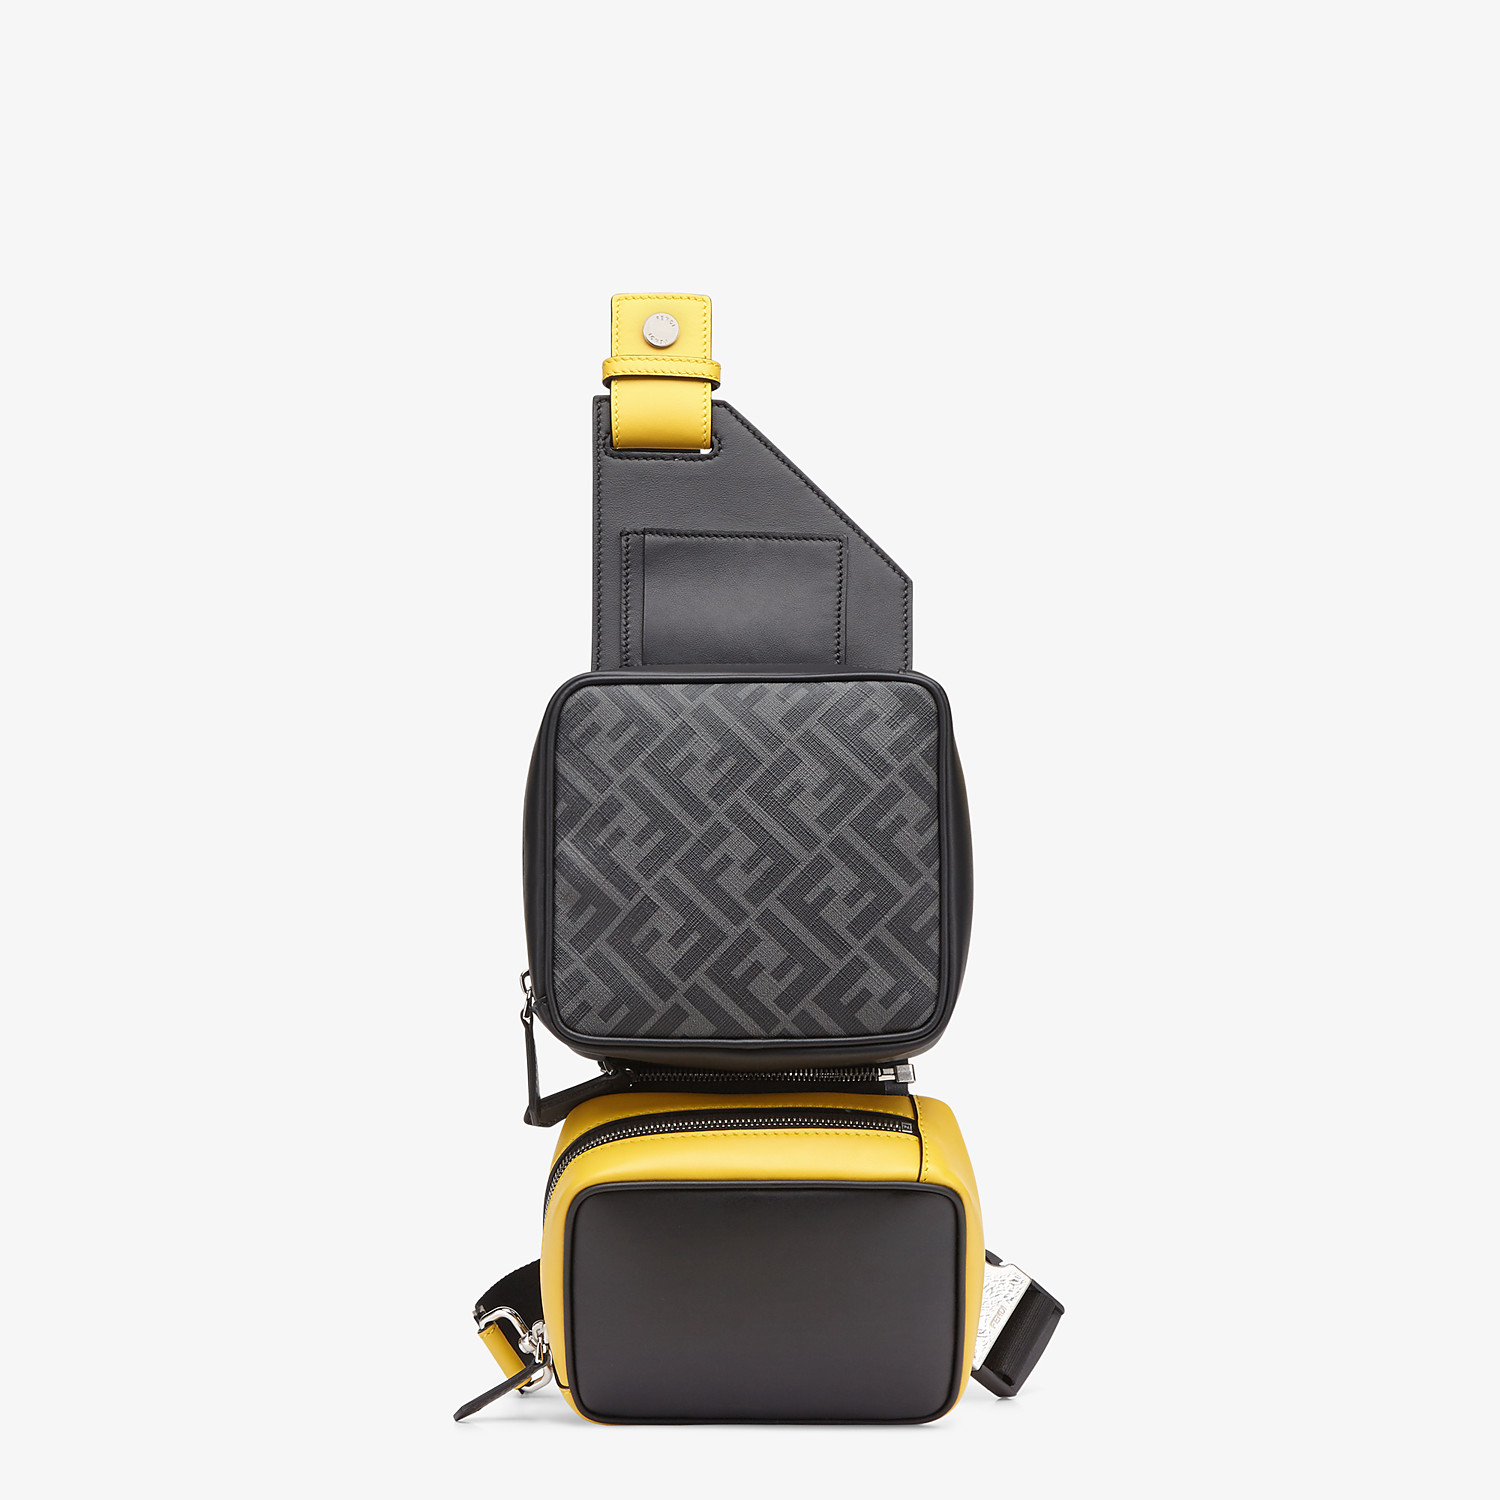 FENDI BACKPACK - Black leather backpack - view 1 detail